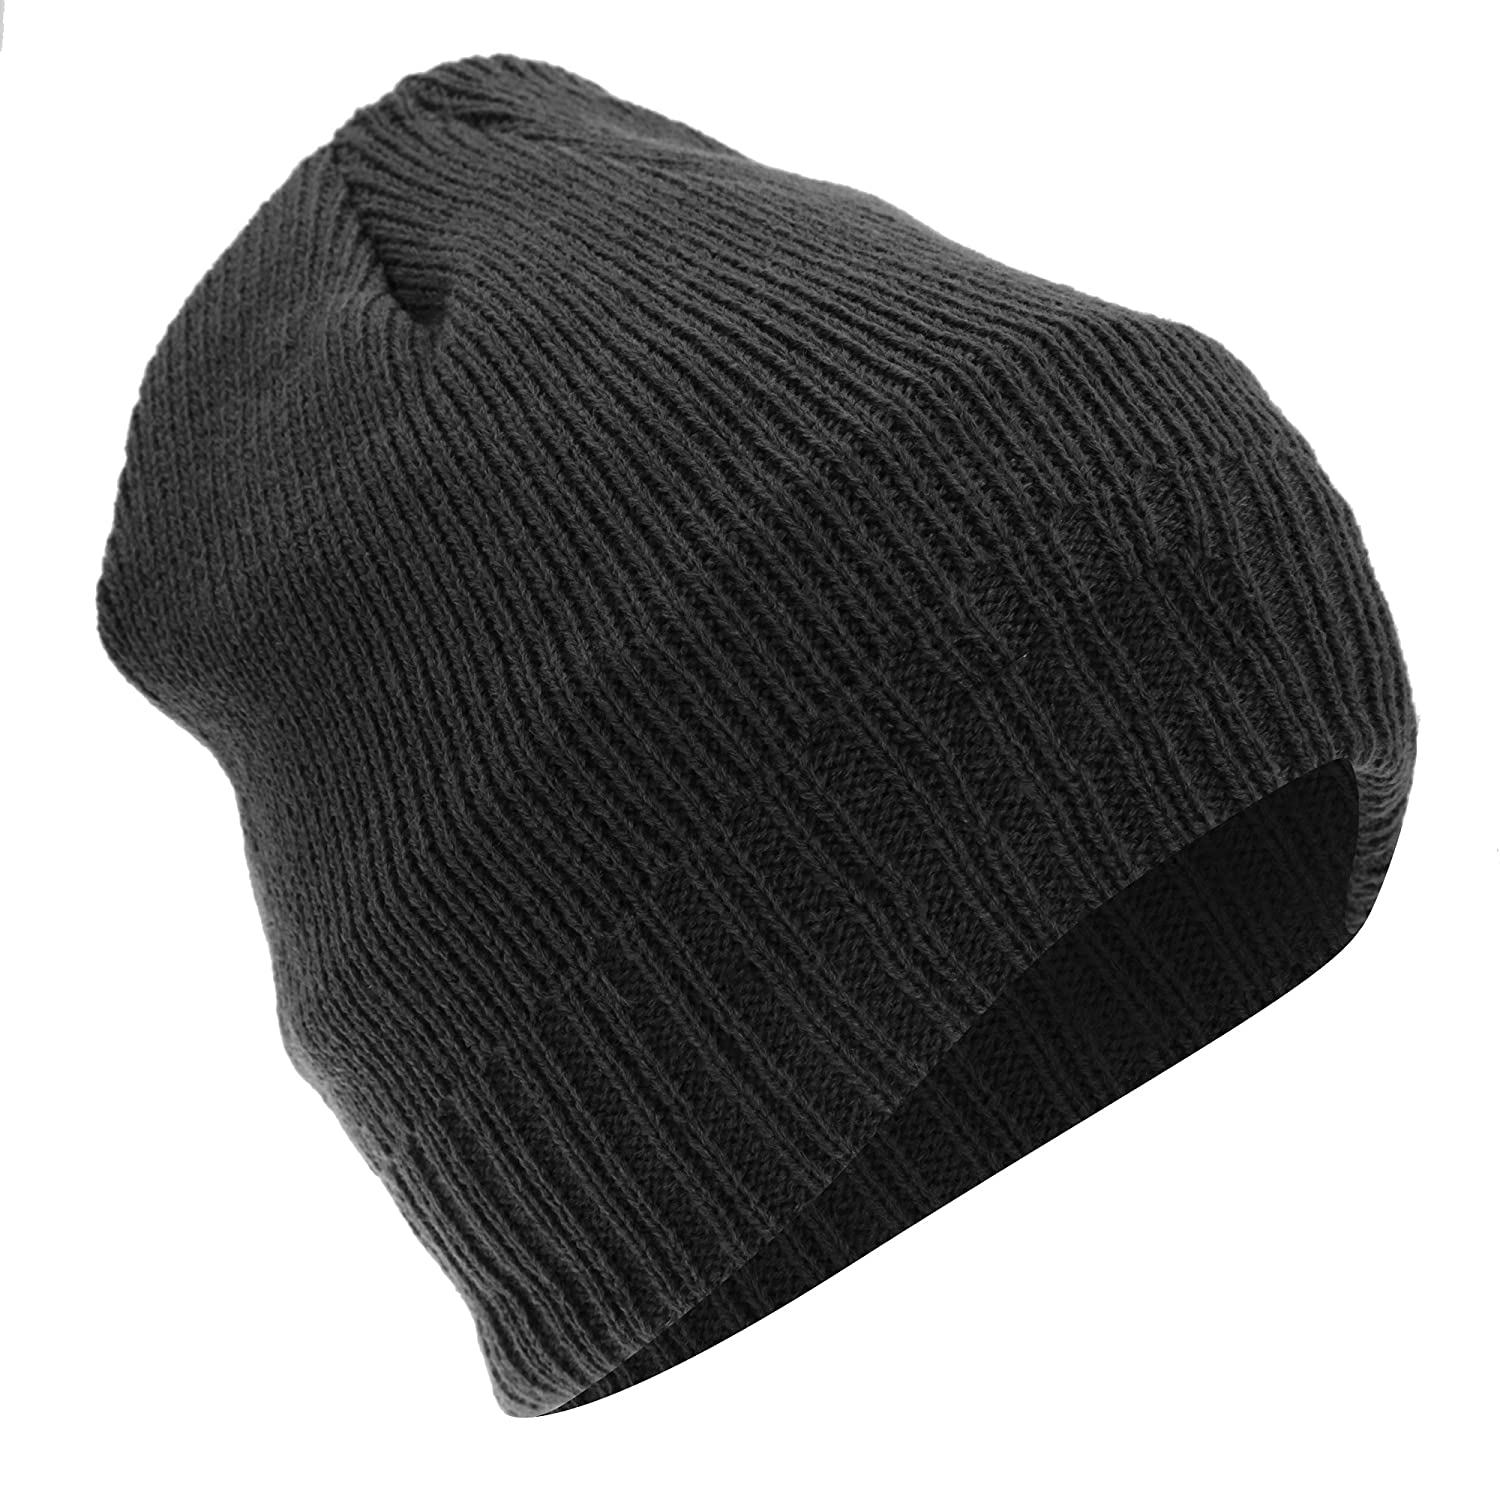 ca421050141 Floso® Mens Thinsulate Knitted Thermal Beanie Winter Ski Hat With Inner  Lining (3M 40g) (One Size Fits All) (Black)  Amazon.co.uk  Clothing